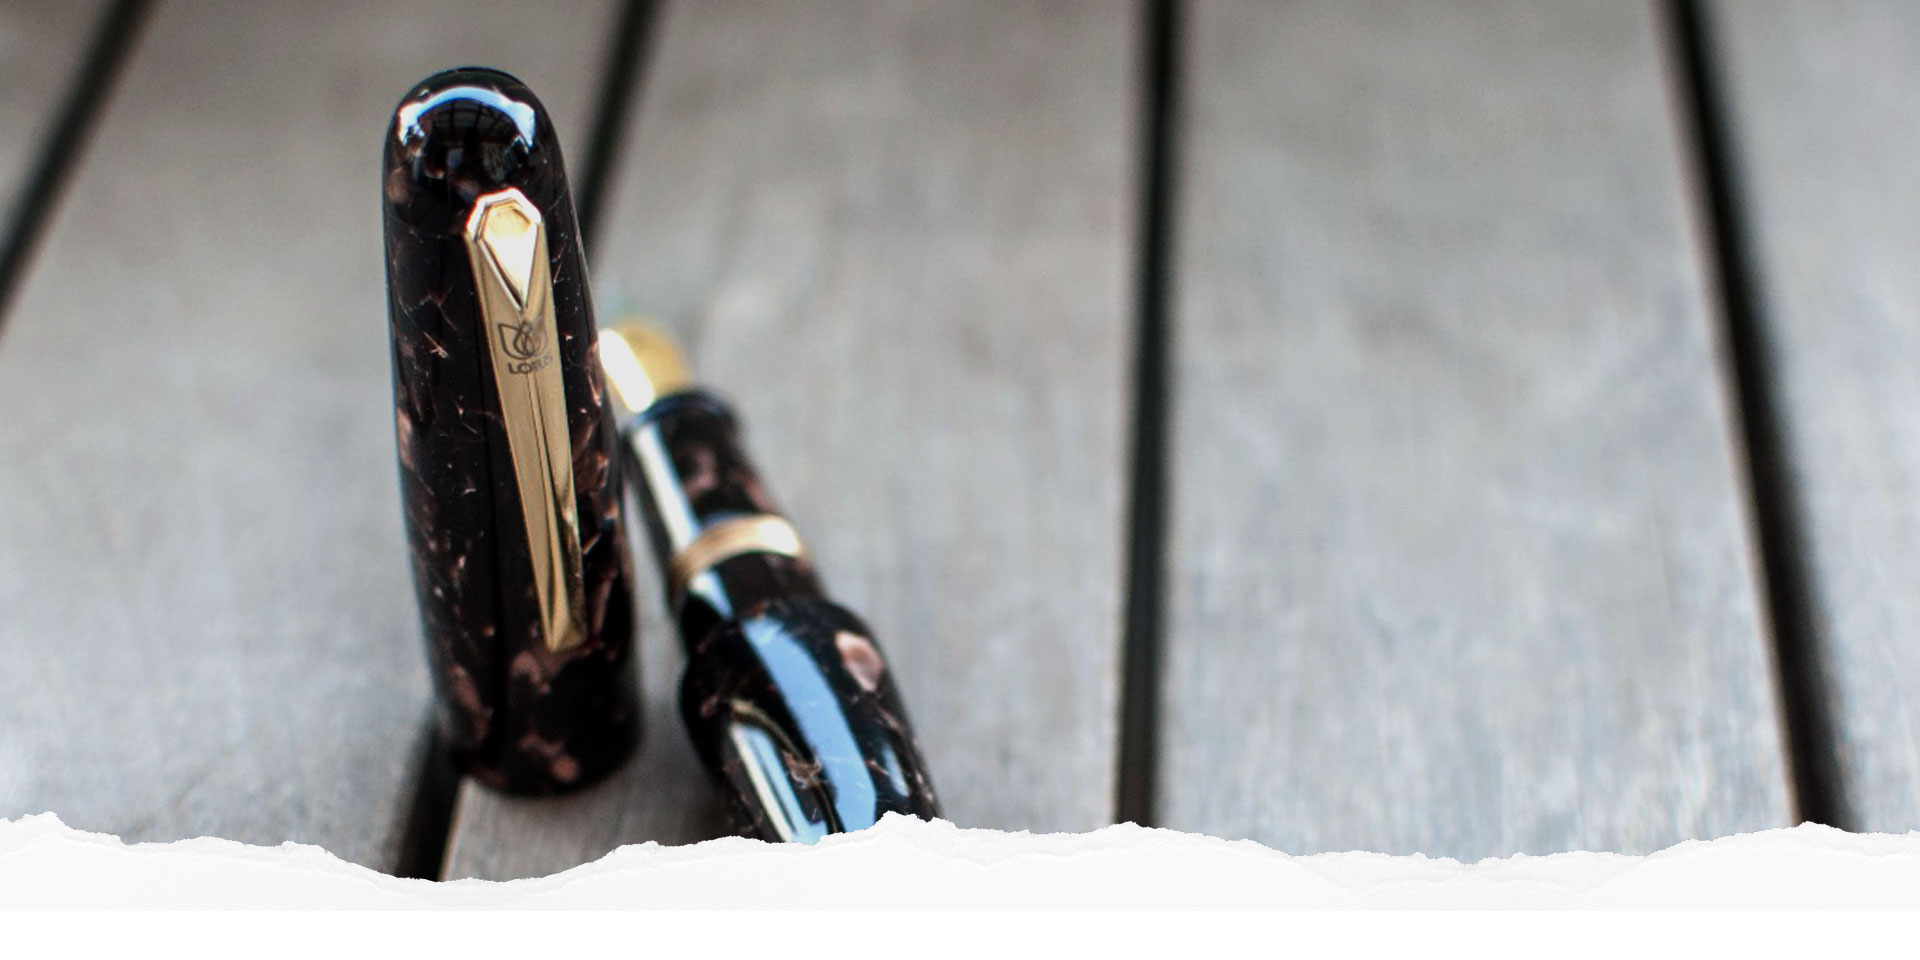 We proudly present you LOTUS HAND PAINTED FOUNTAIN PEN